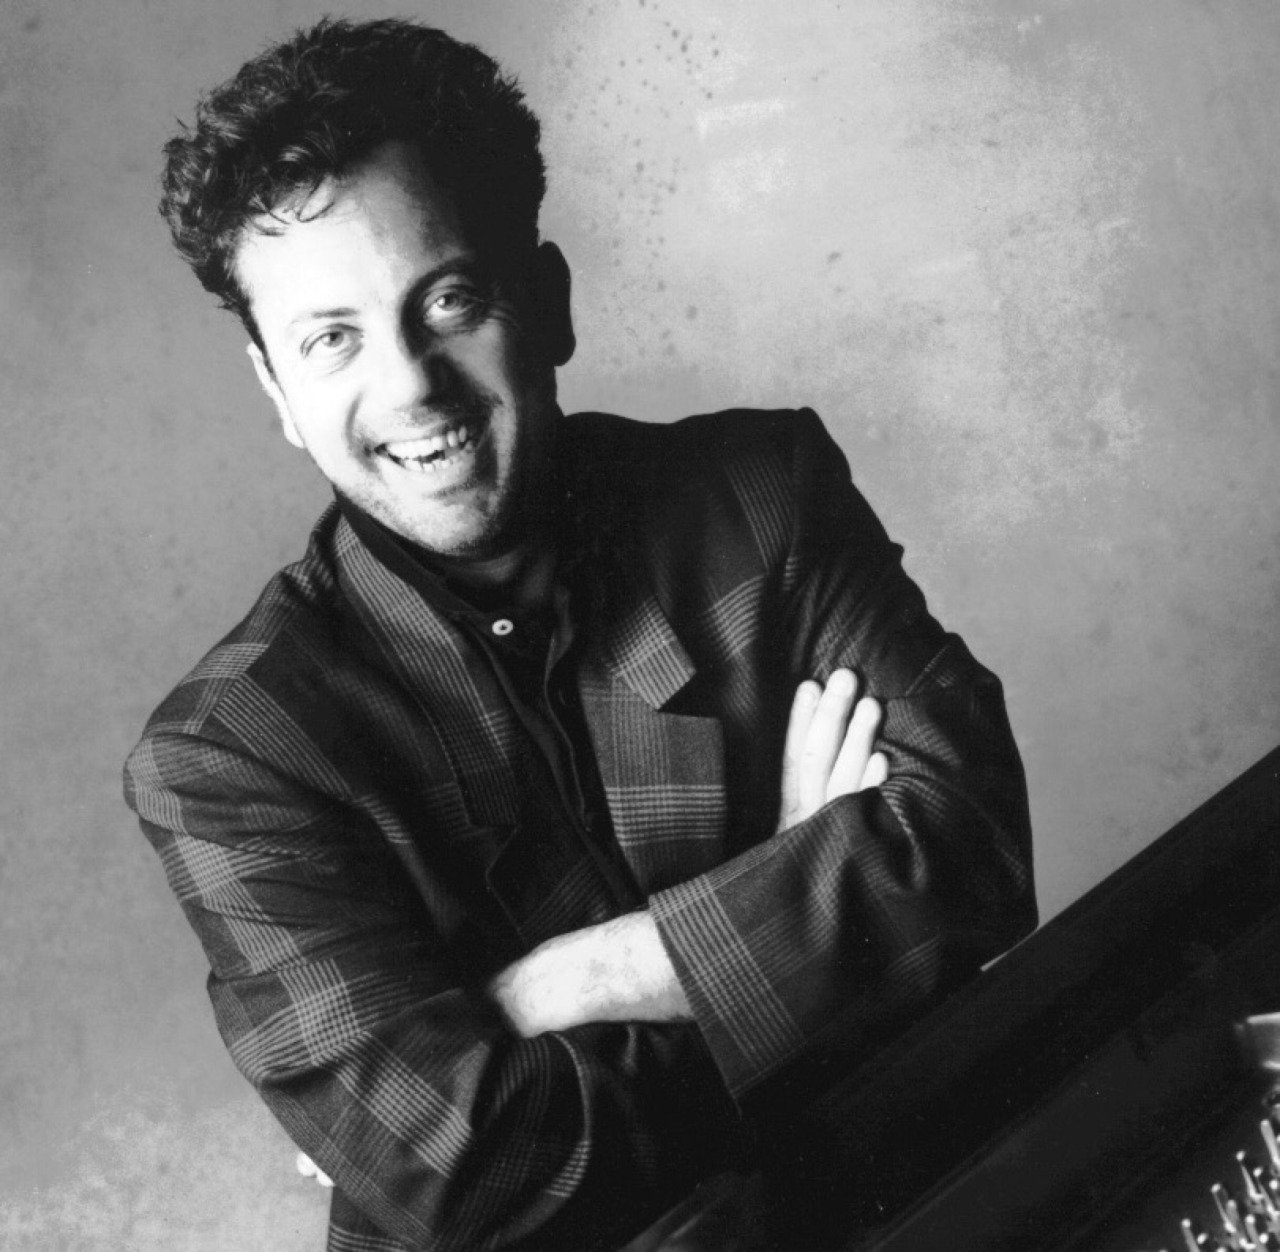 Billy Joel - Prelude/Angry Young - 197.7KB